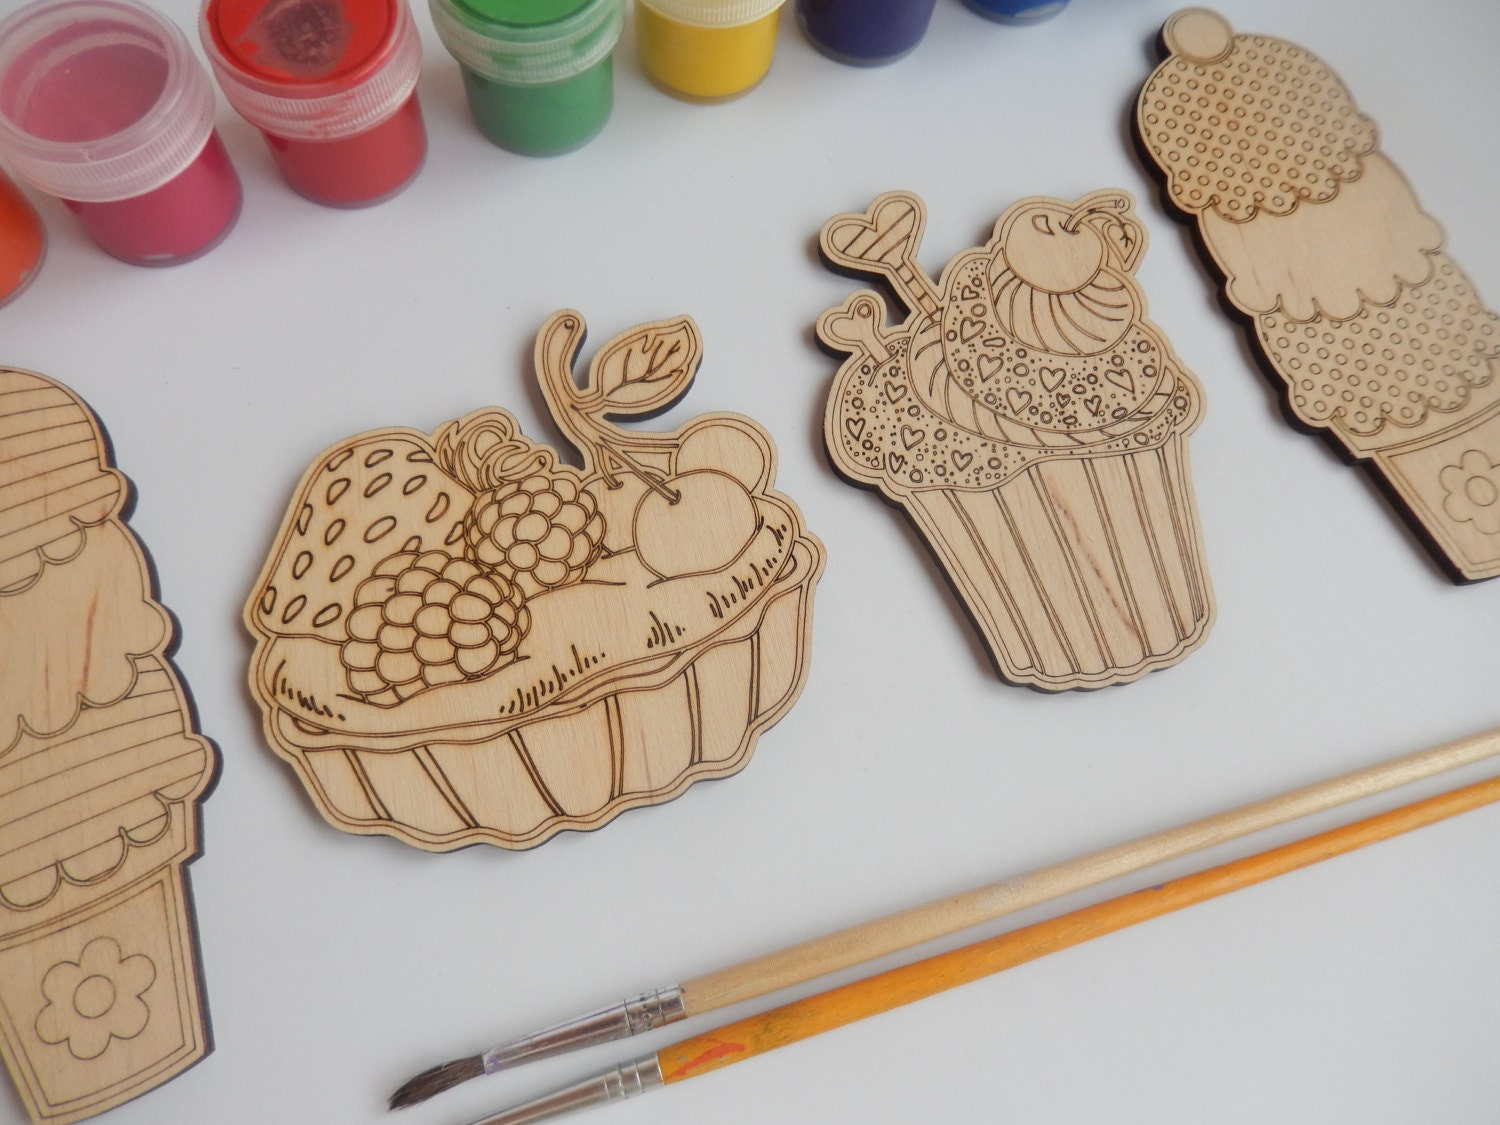 4 Cupcake And Ice Cream Wooden Shapes For Crafts Adult